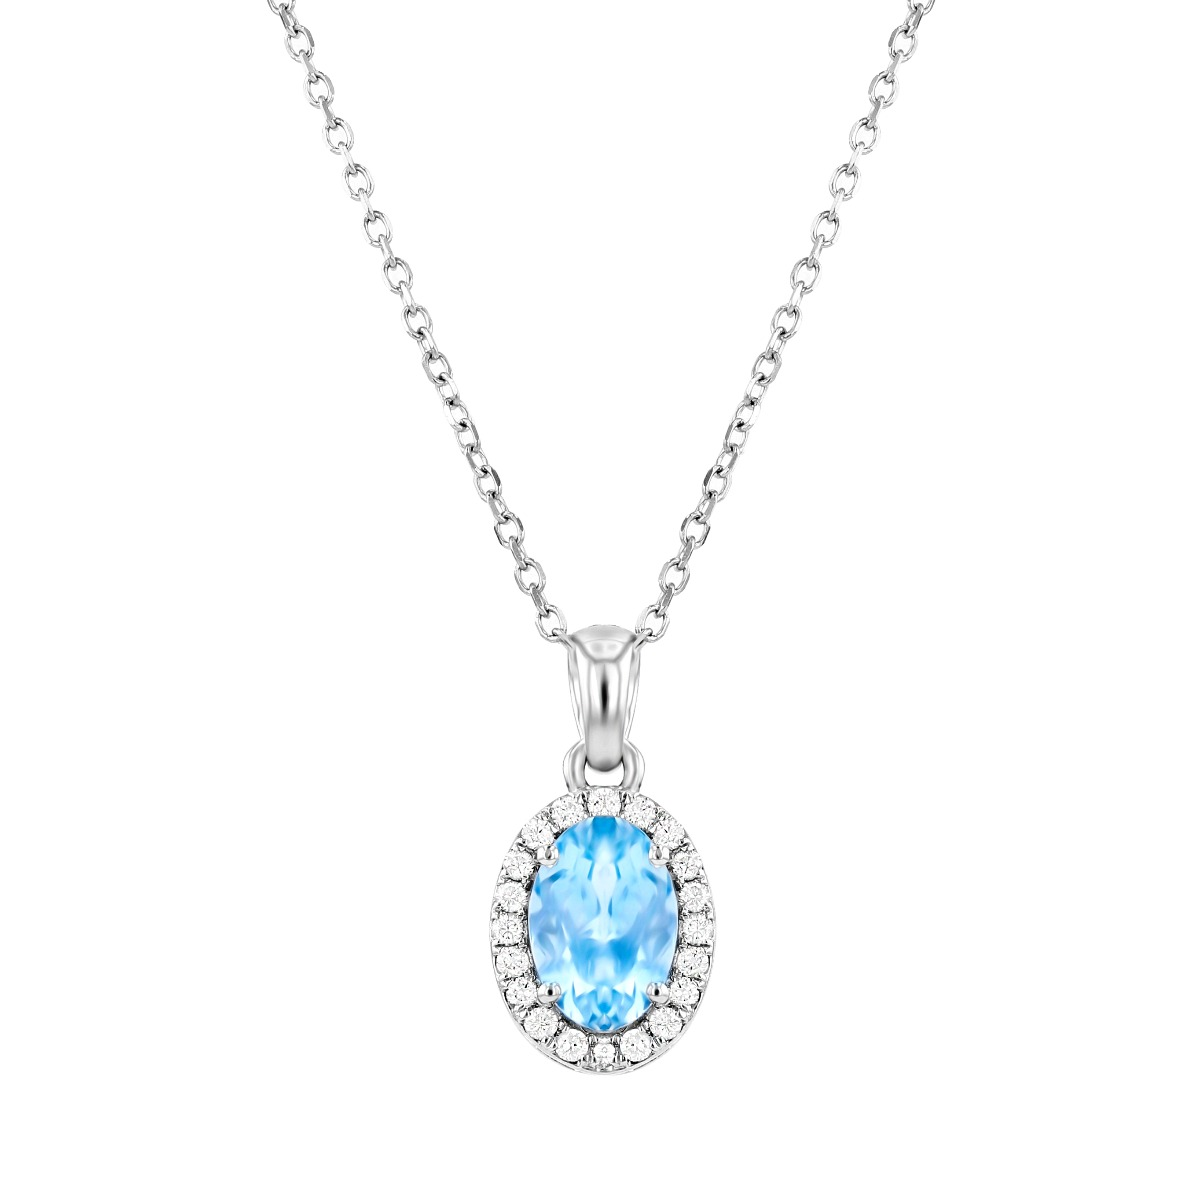 Rosa Mer Collection 0.68ct Oval Aquamarine and Diamond Halo Necklace